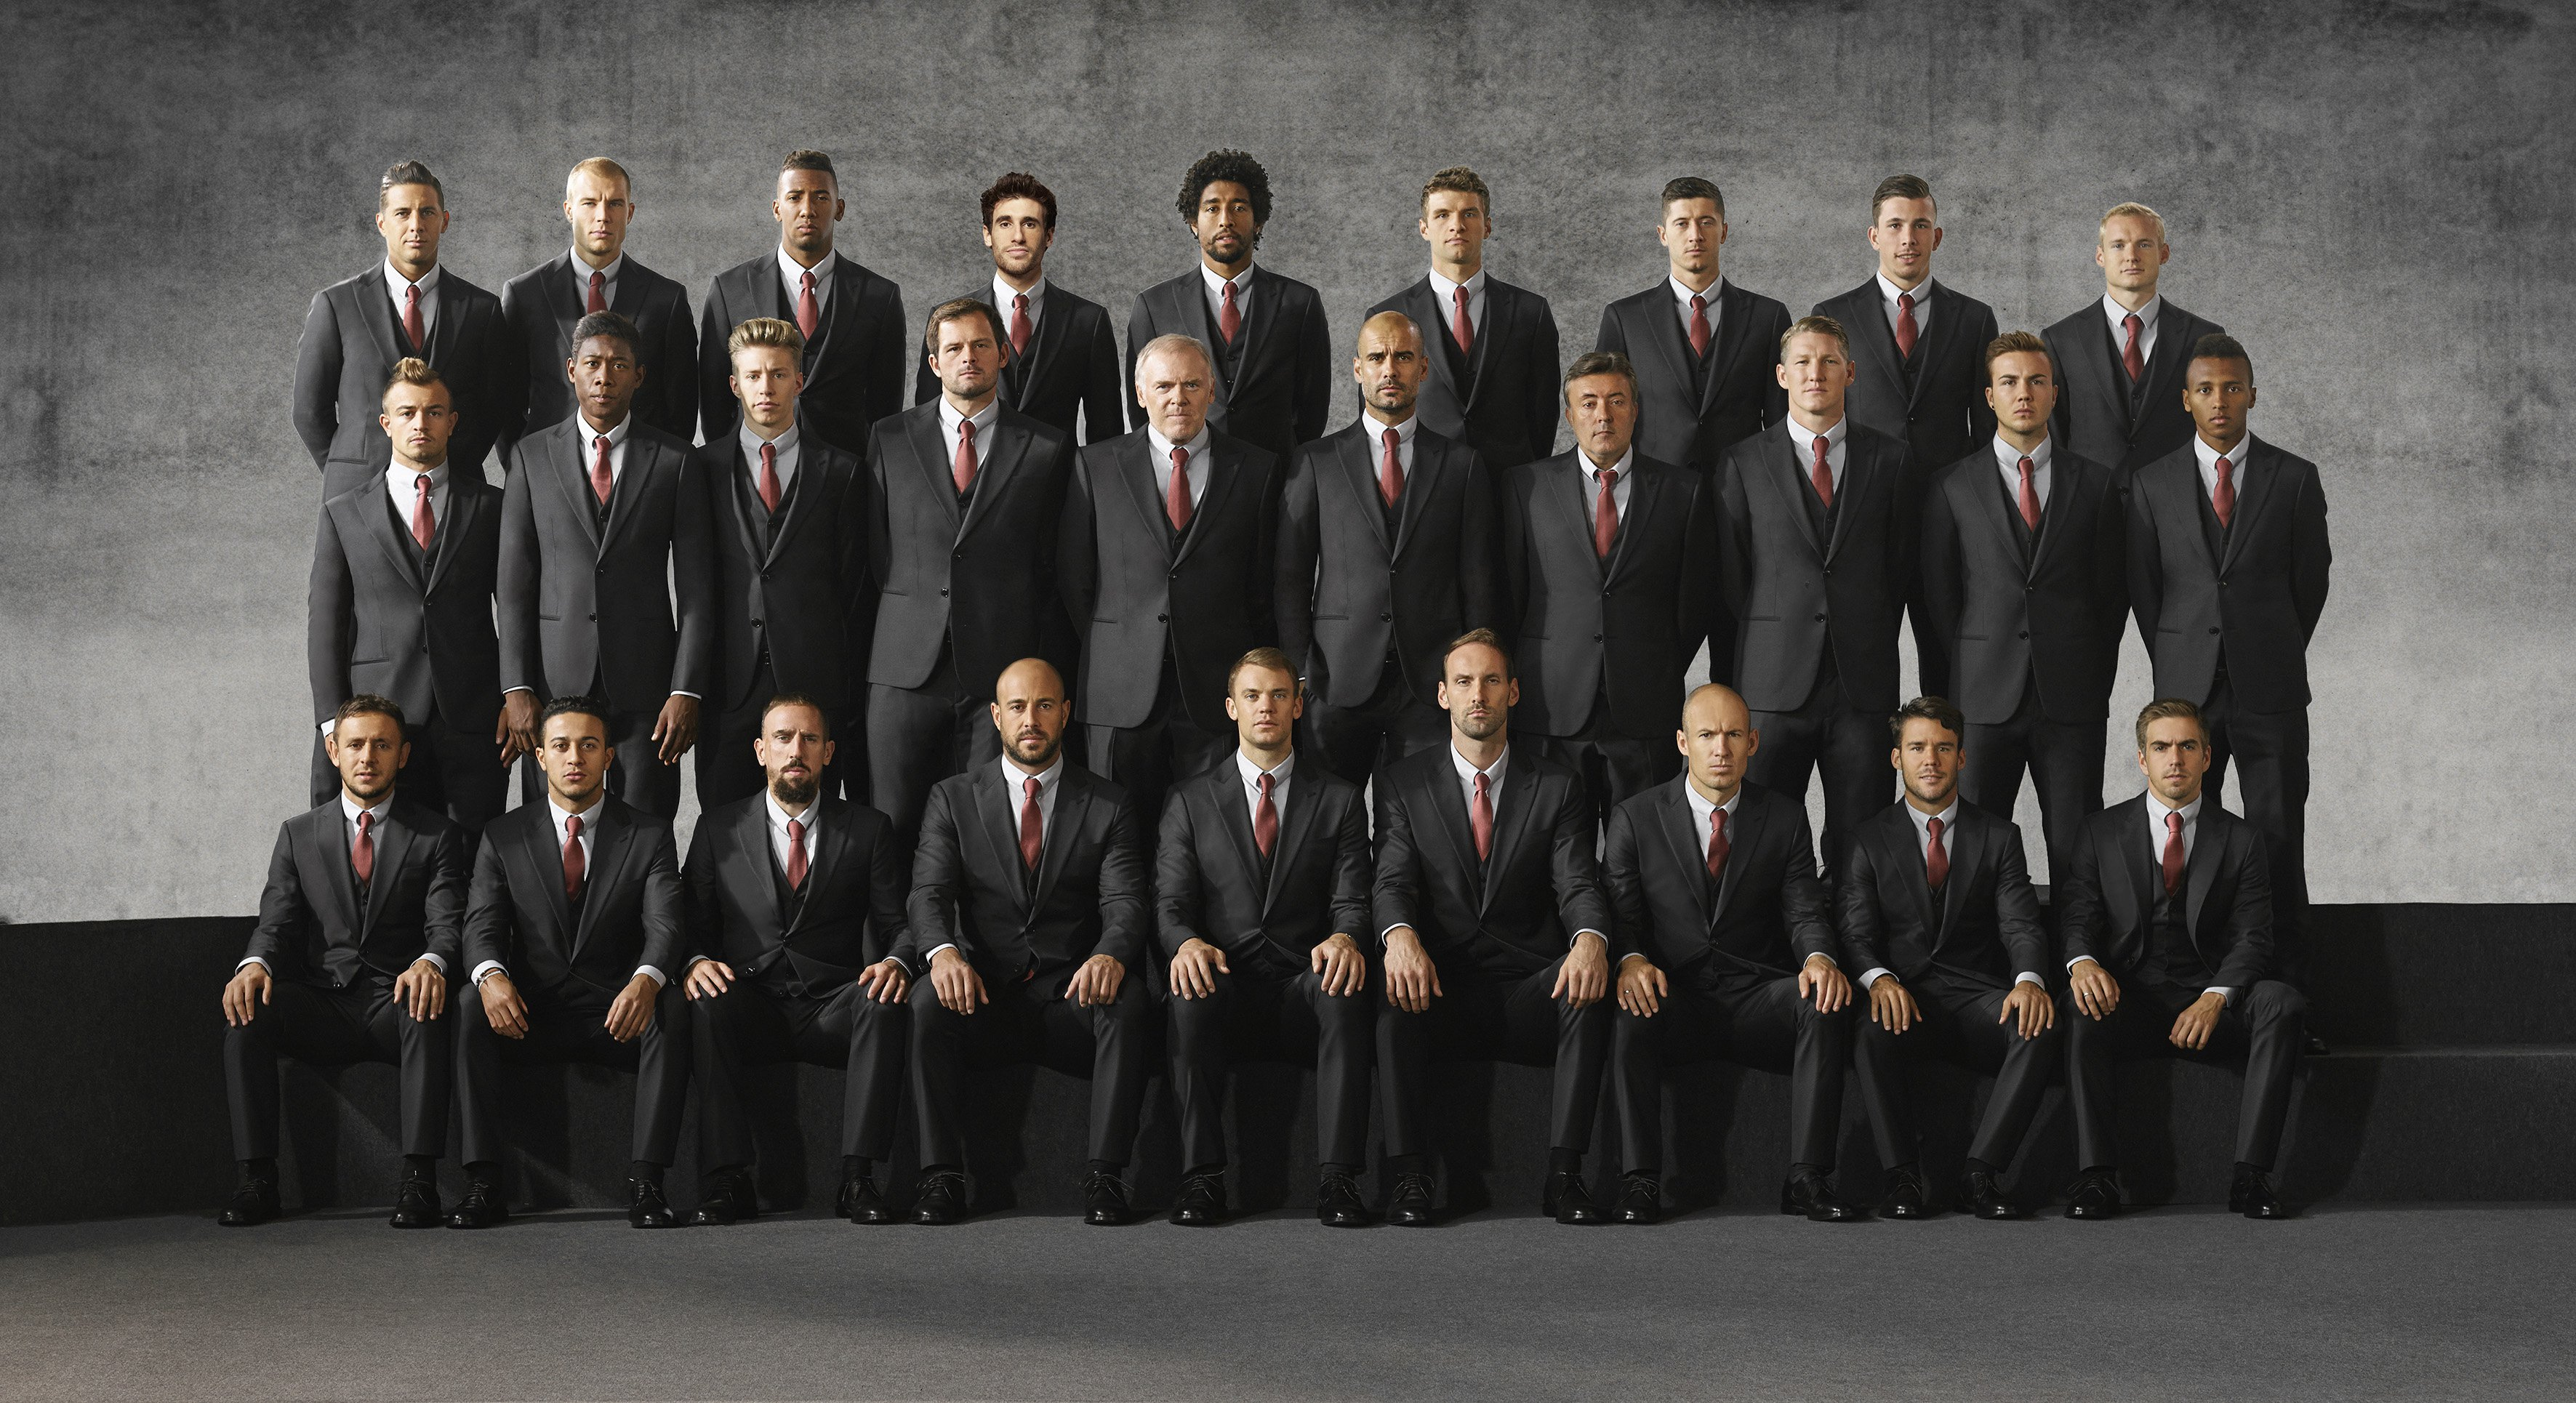 FC Bayern München Outfitted by Giorgio Armani